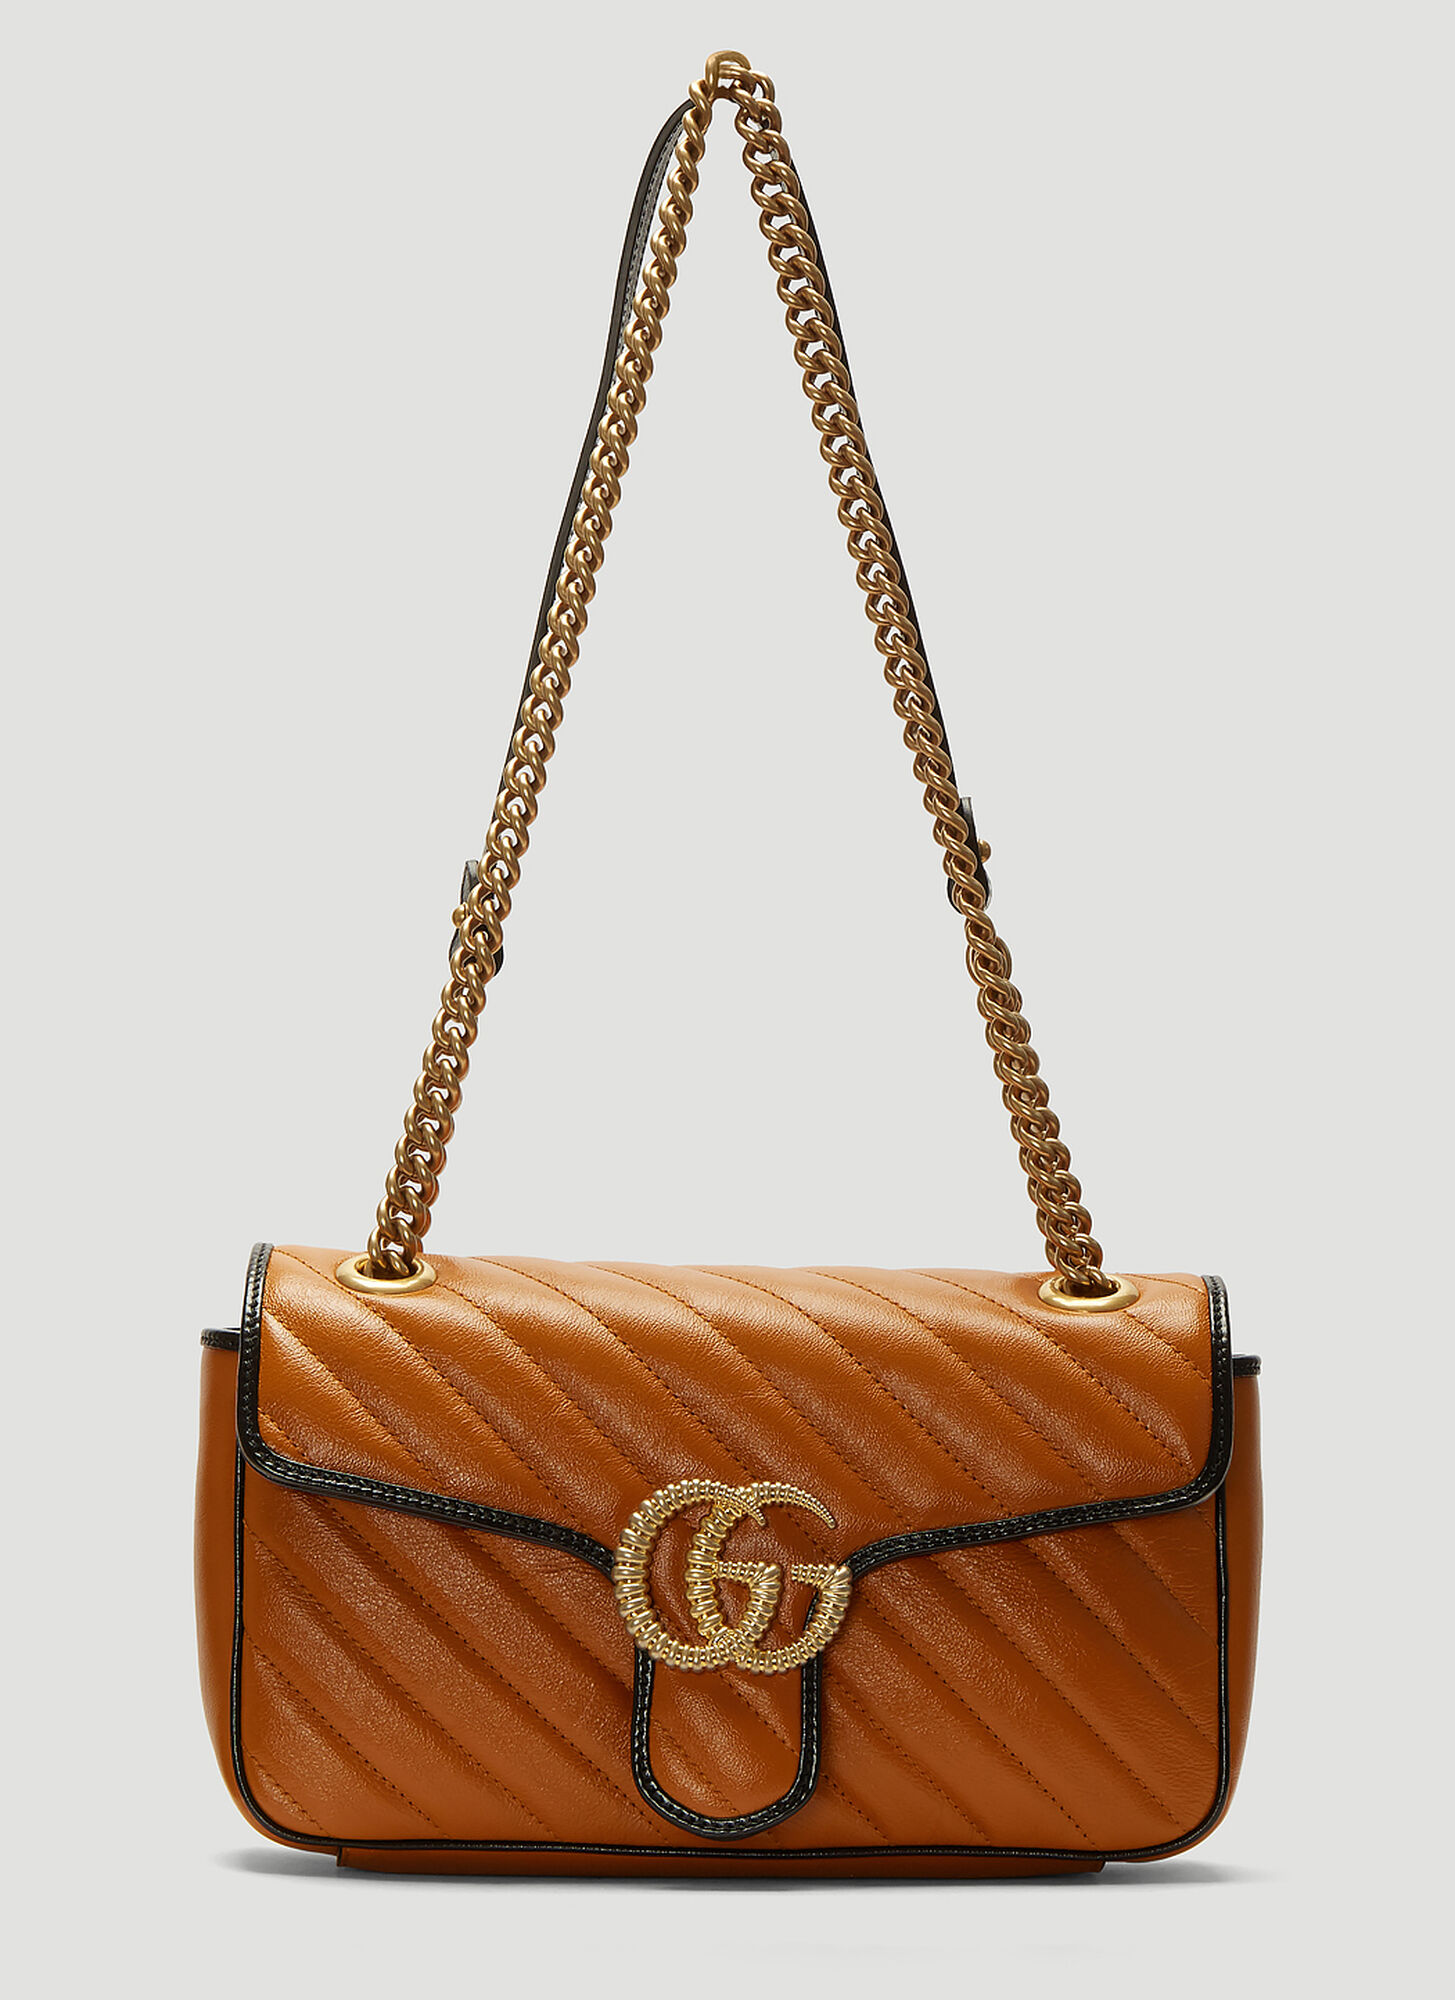 Gucci Marmont Leather Shoulder Bag in Brown